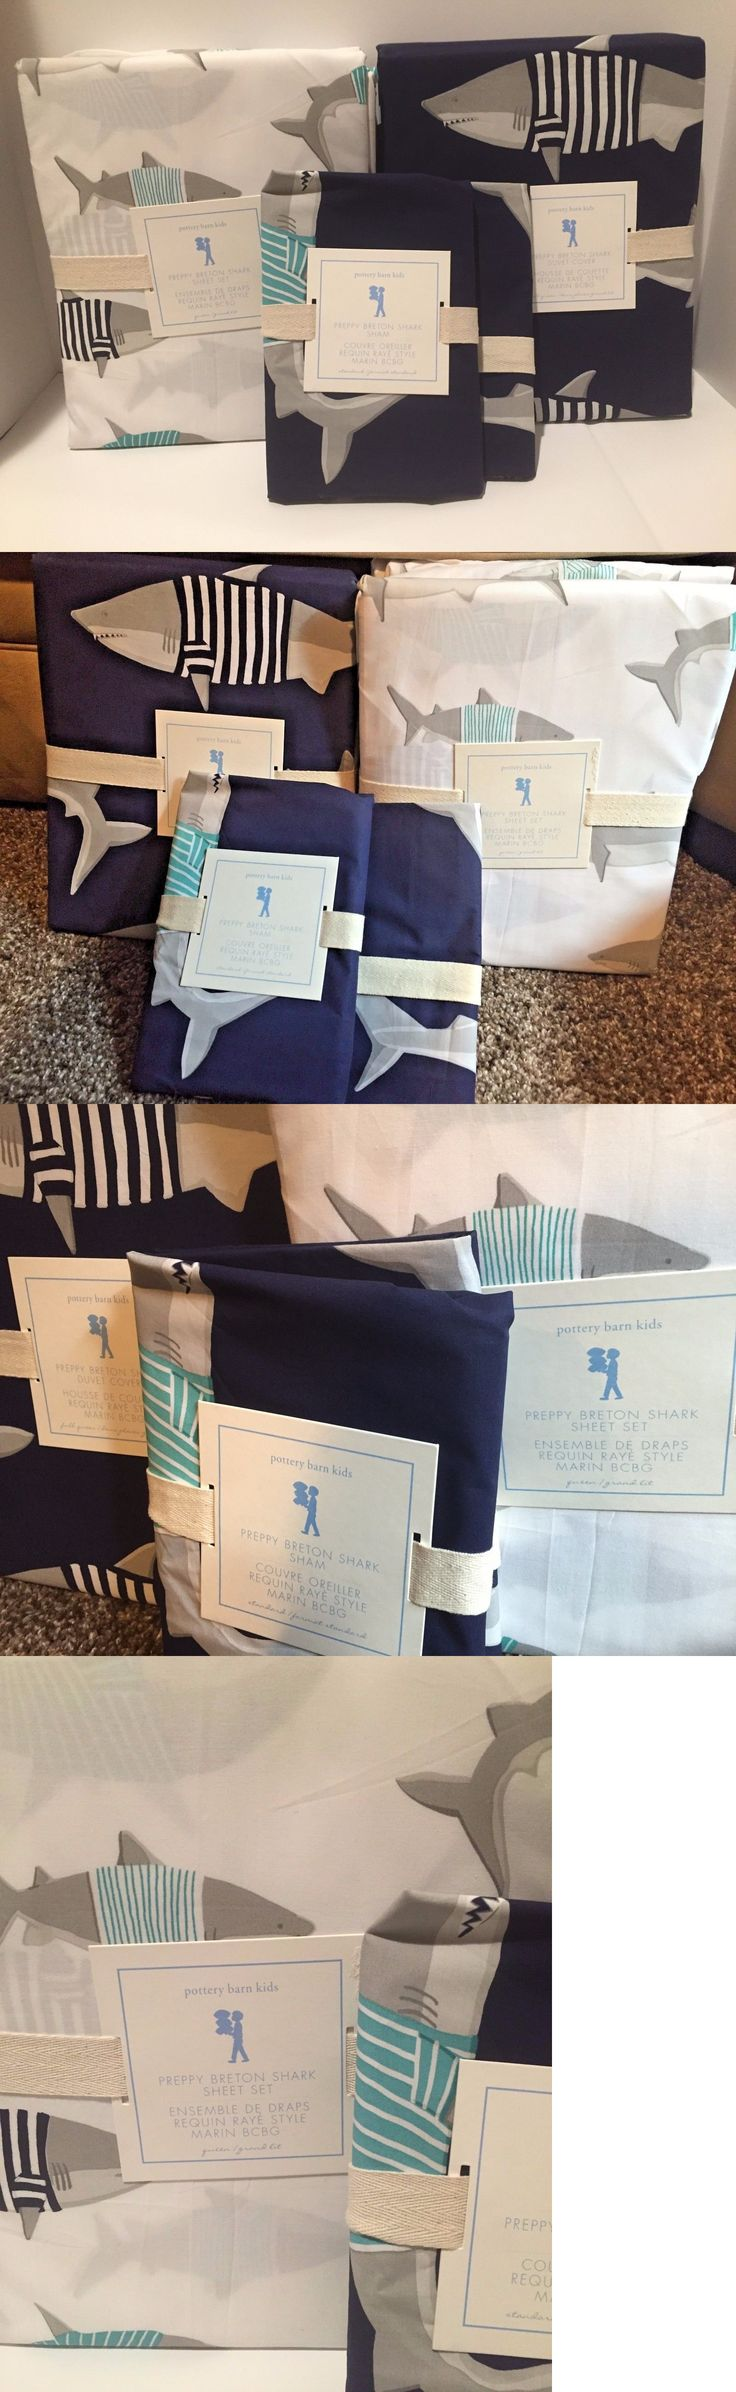 Pottery barn kids camp bed - Kids Bedding New Pottery Barn Kids Preppy Breton Shark Full Queen Duvet Shams